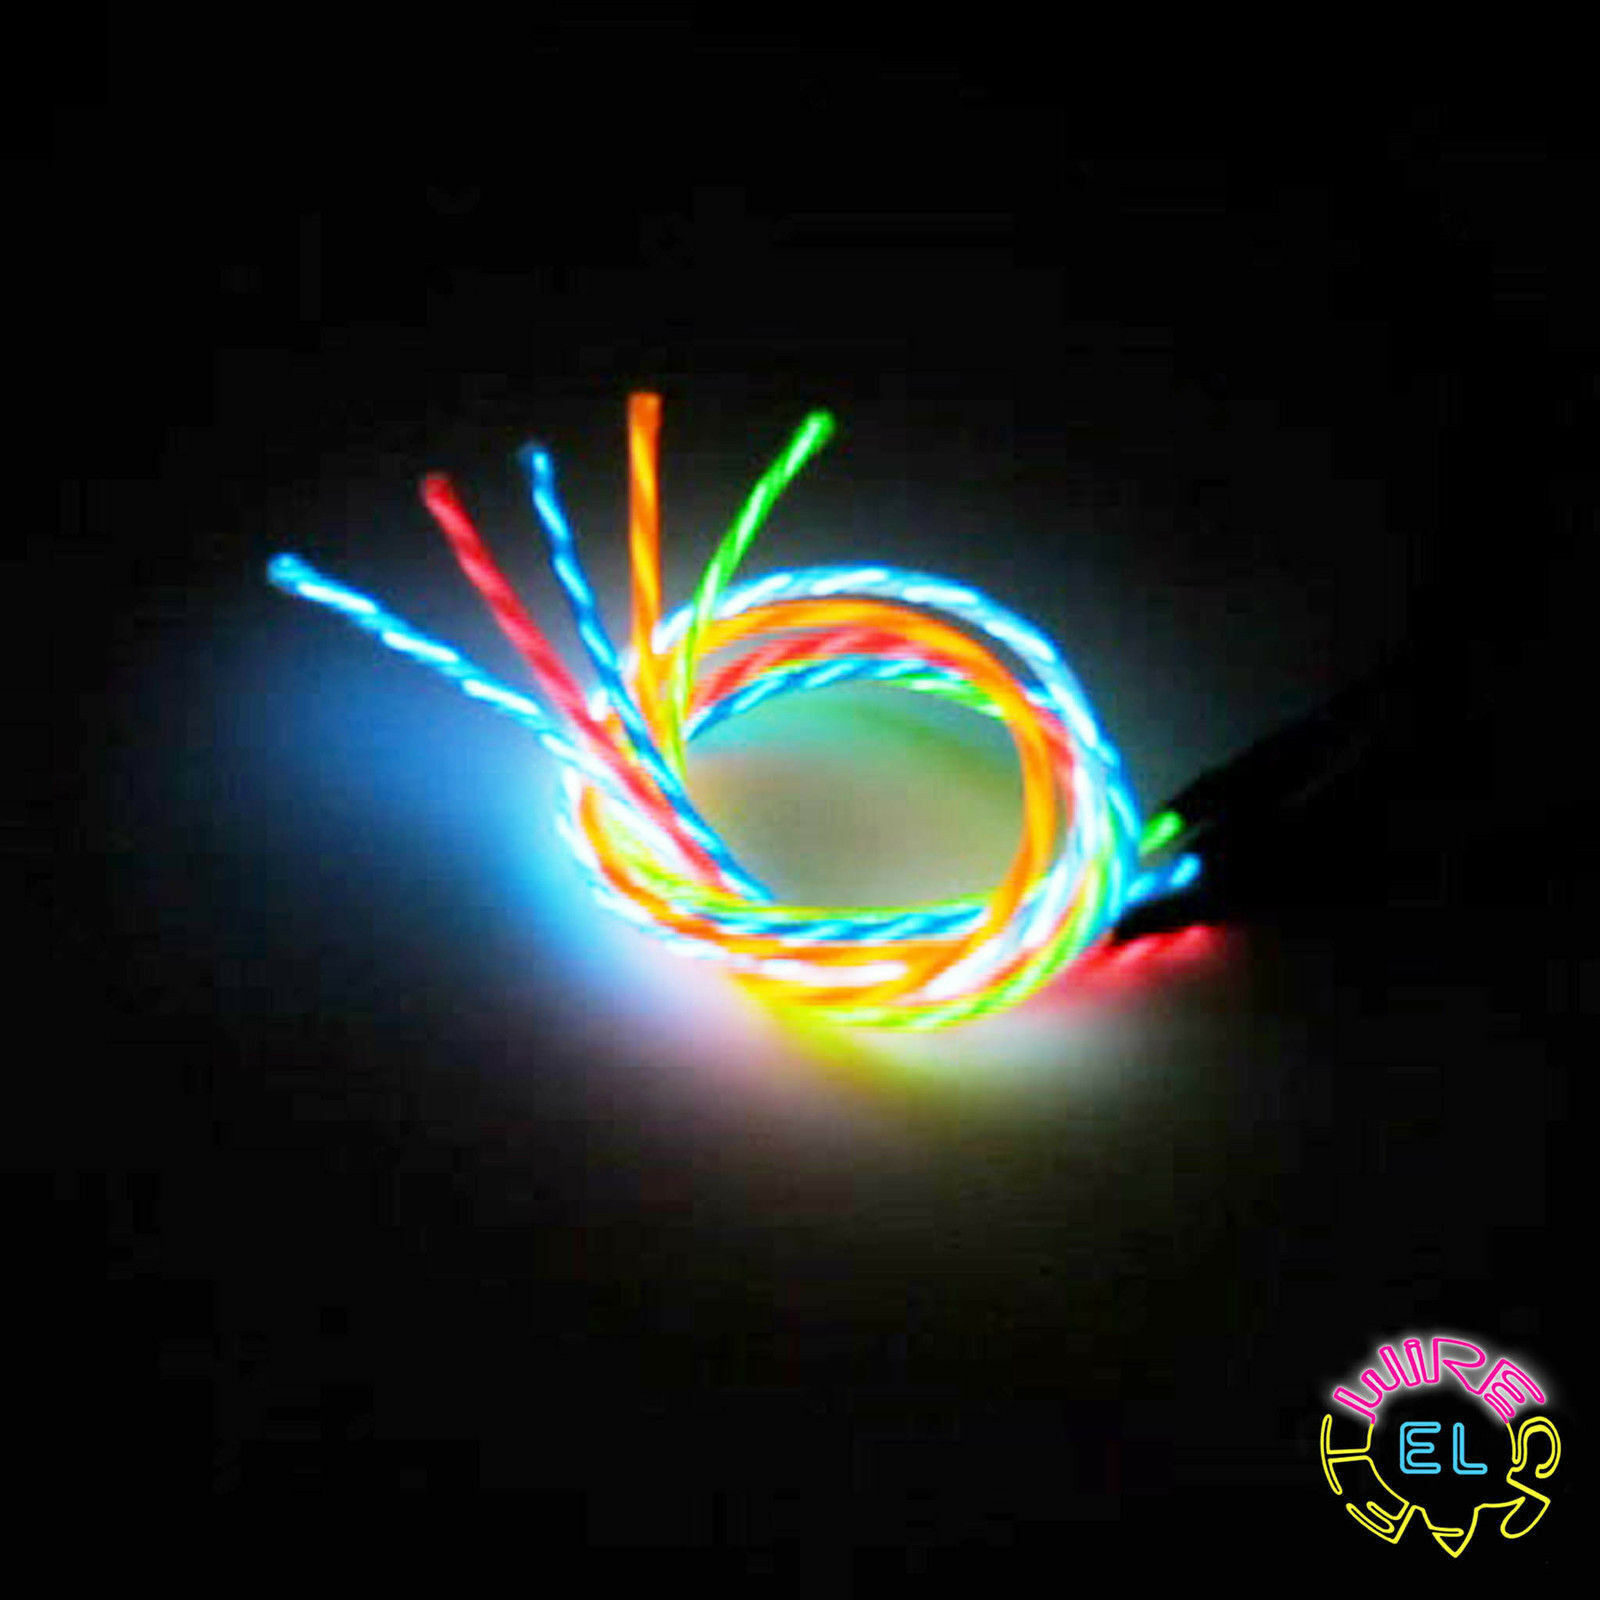 3m ULTRA Chasing EL Wire -  p m for Super Bright Glowing Motion Wire